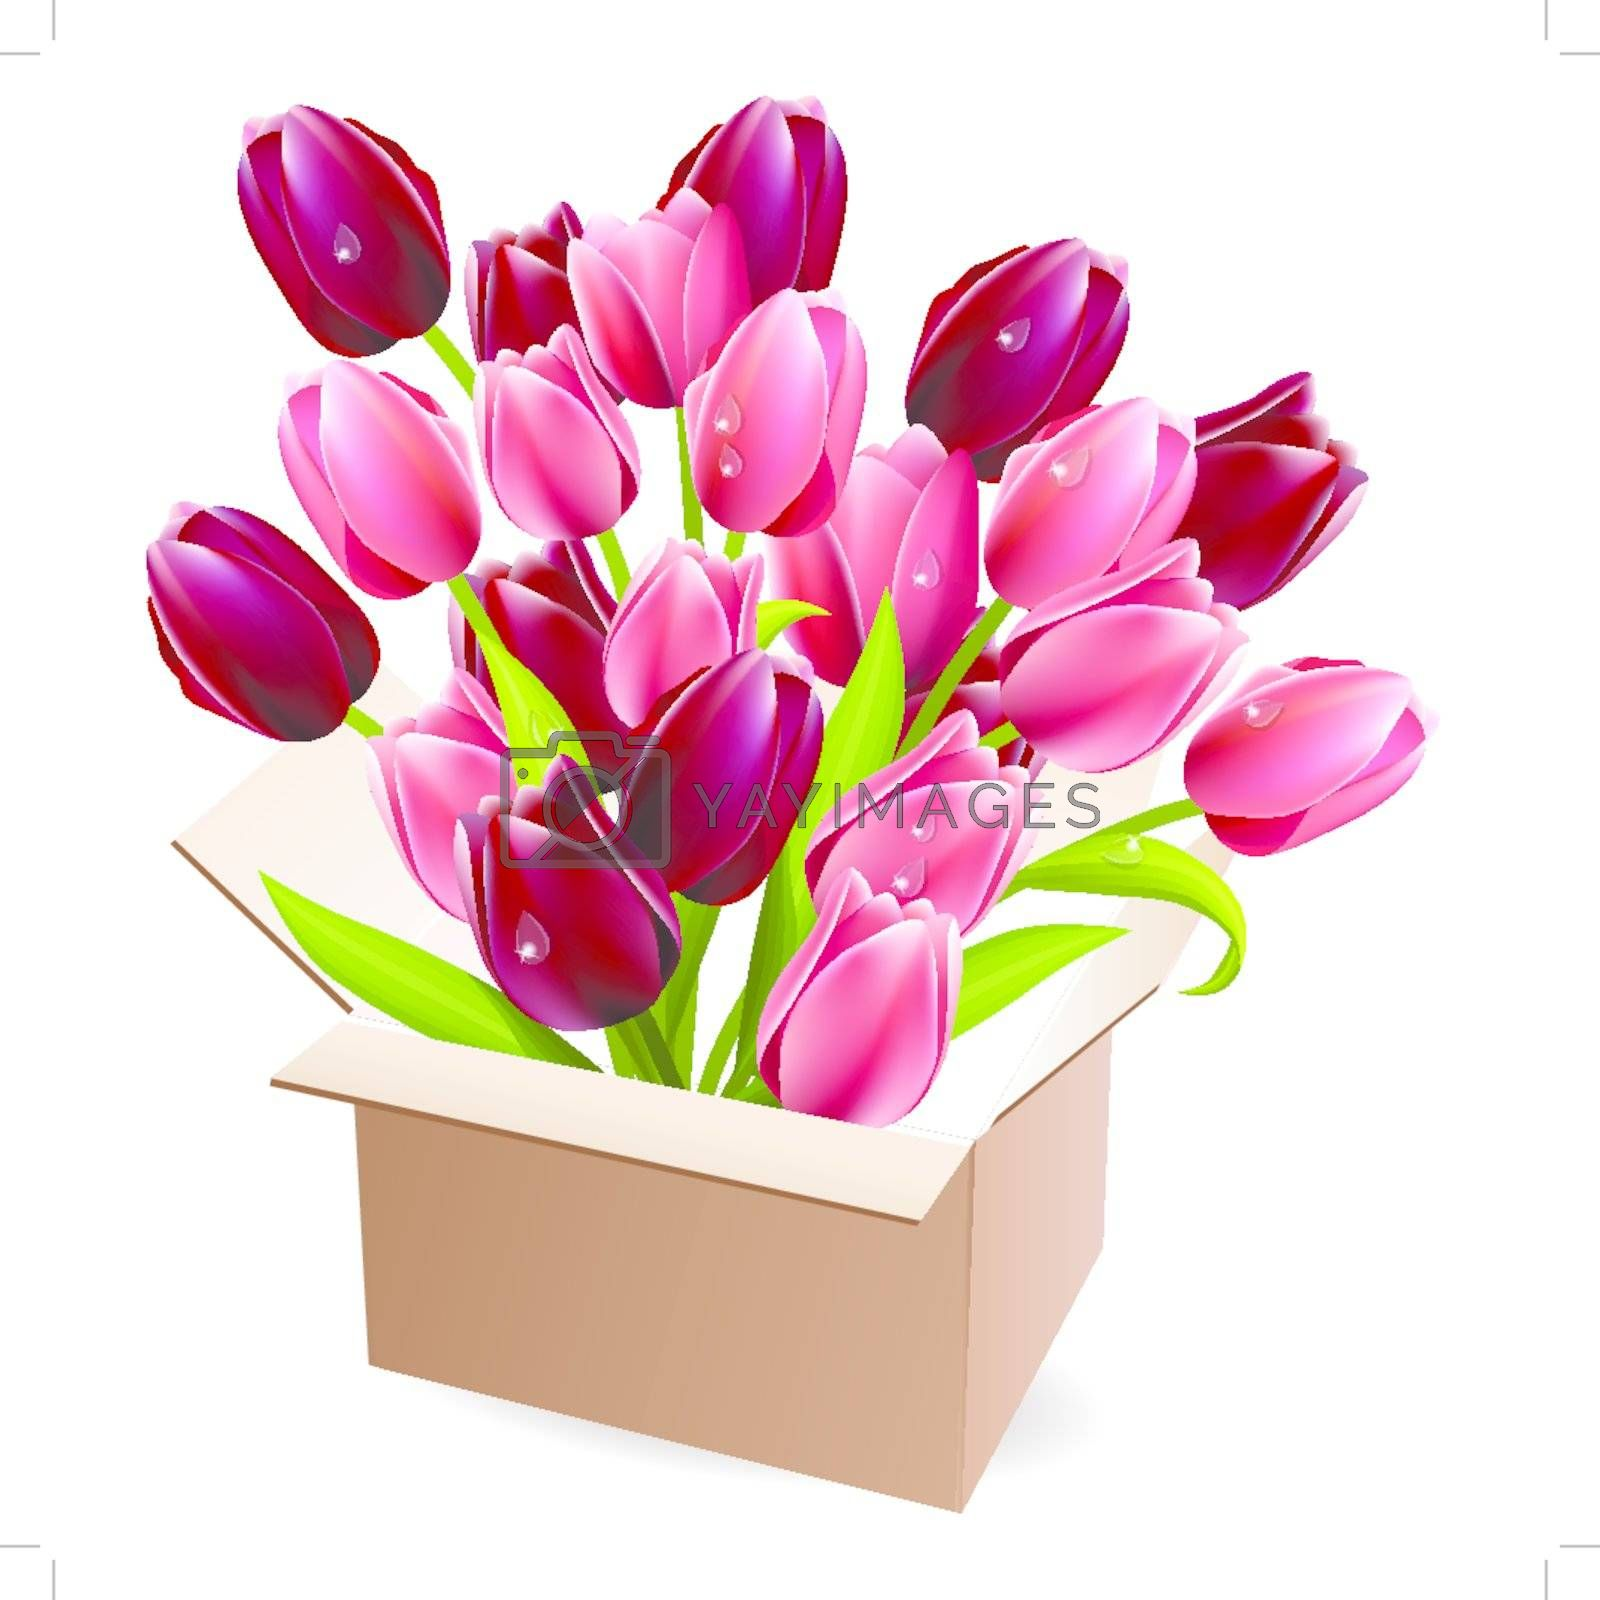 Open box full of tulips by nurrka